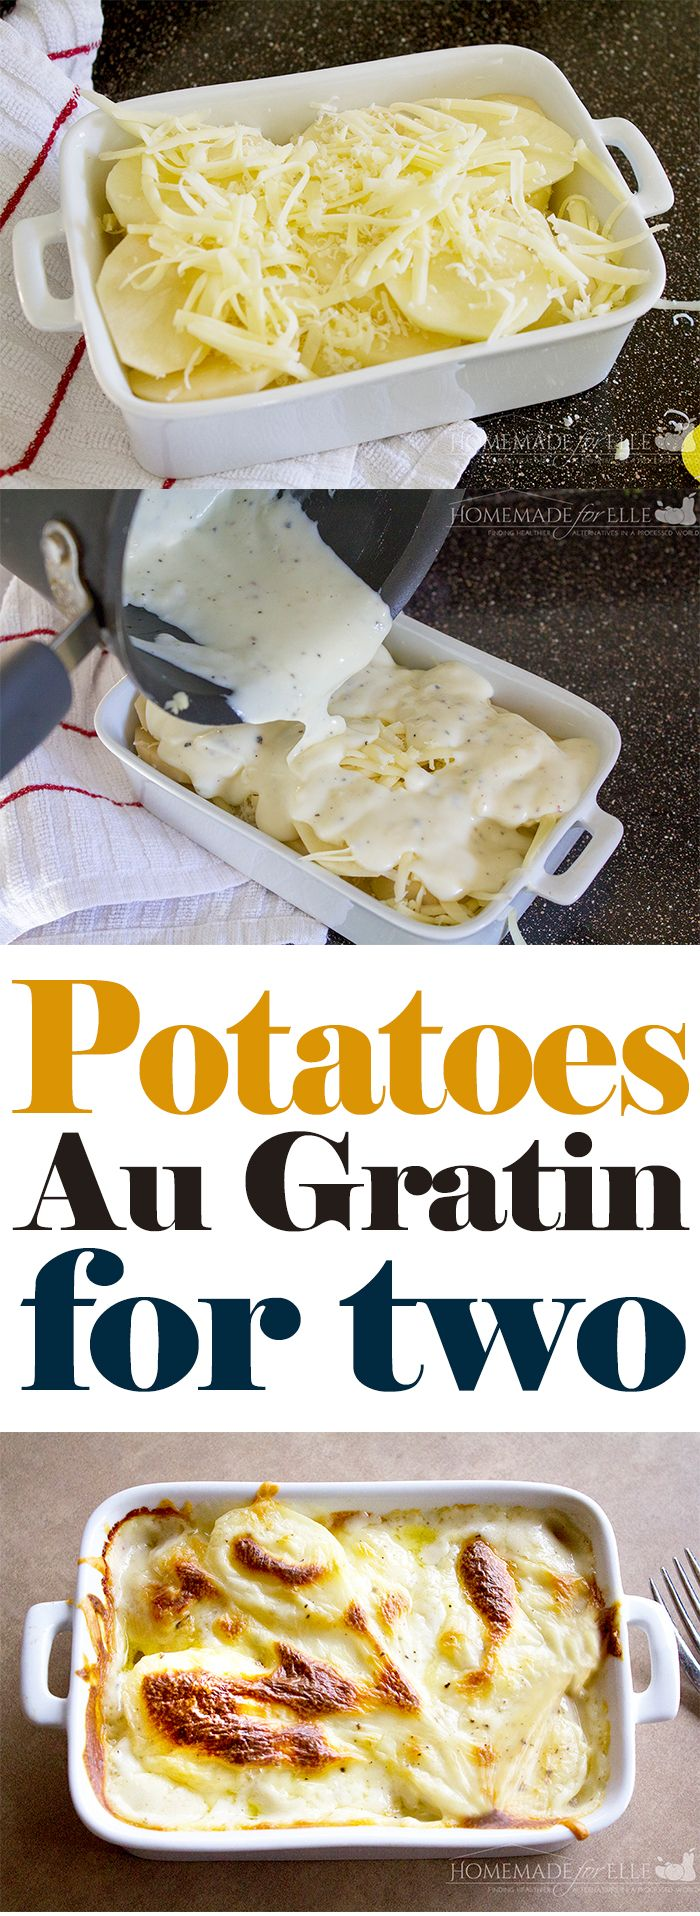 Potatoes Au Gratin for two - the perfect dish to make for you and a ...